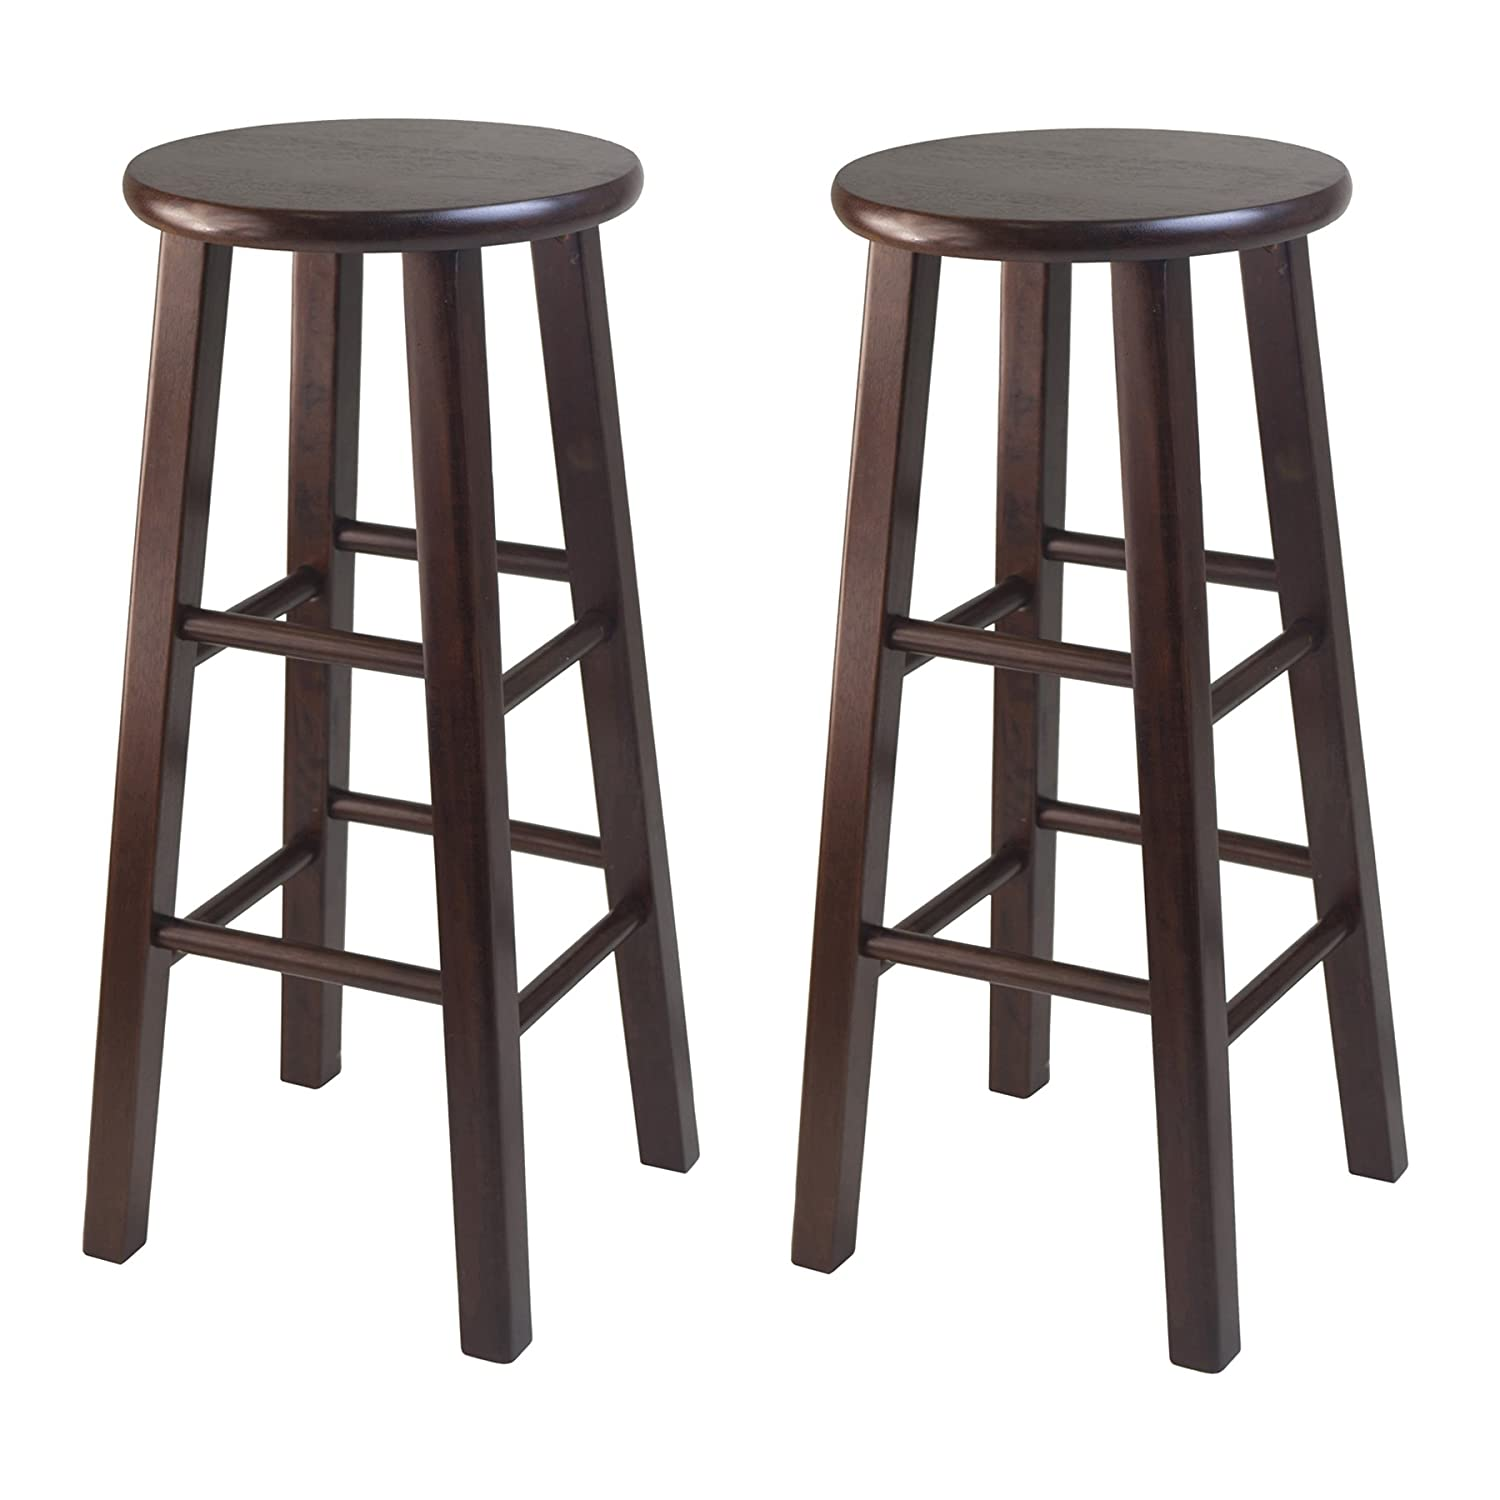 29 inch bar stools Amazon.com: Winsome 29 Inch Square Leg Bar Stool, Antique Walnut  29 inch bar stools